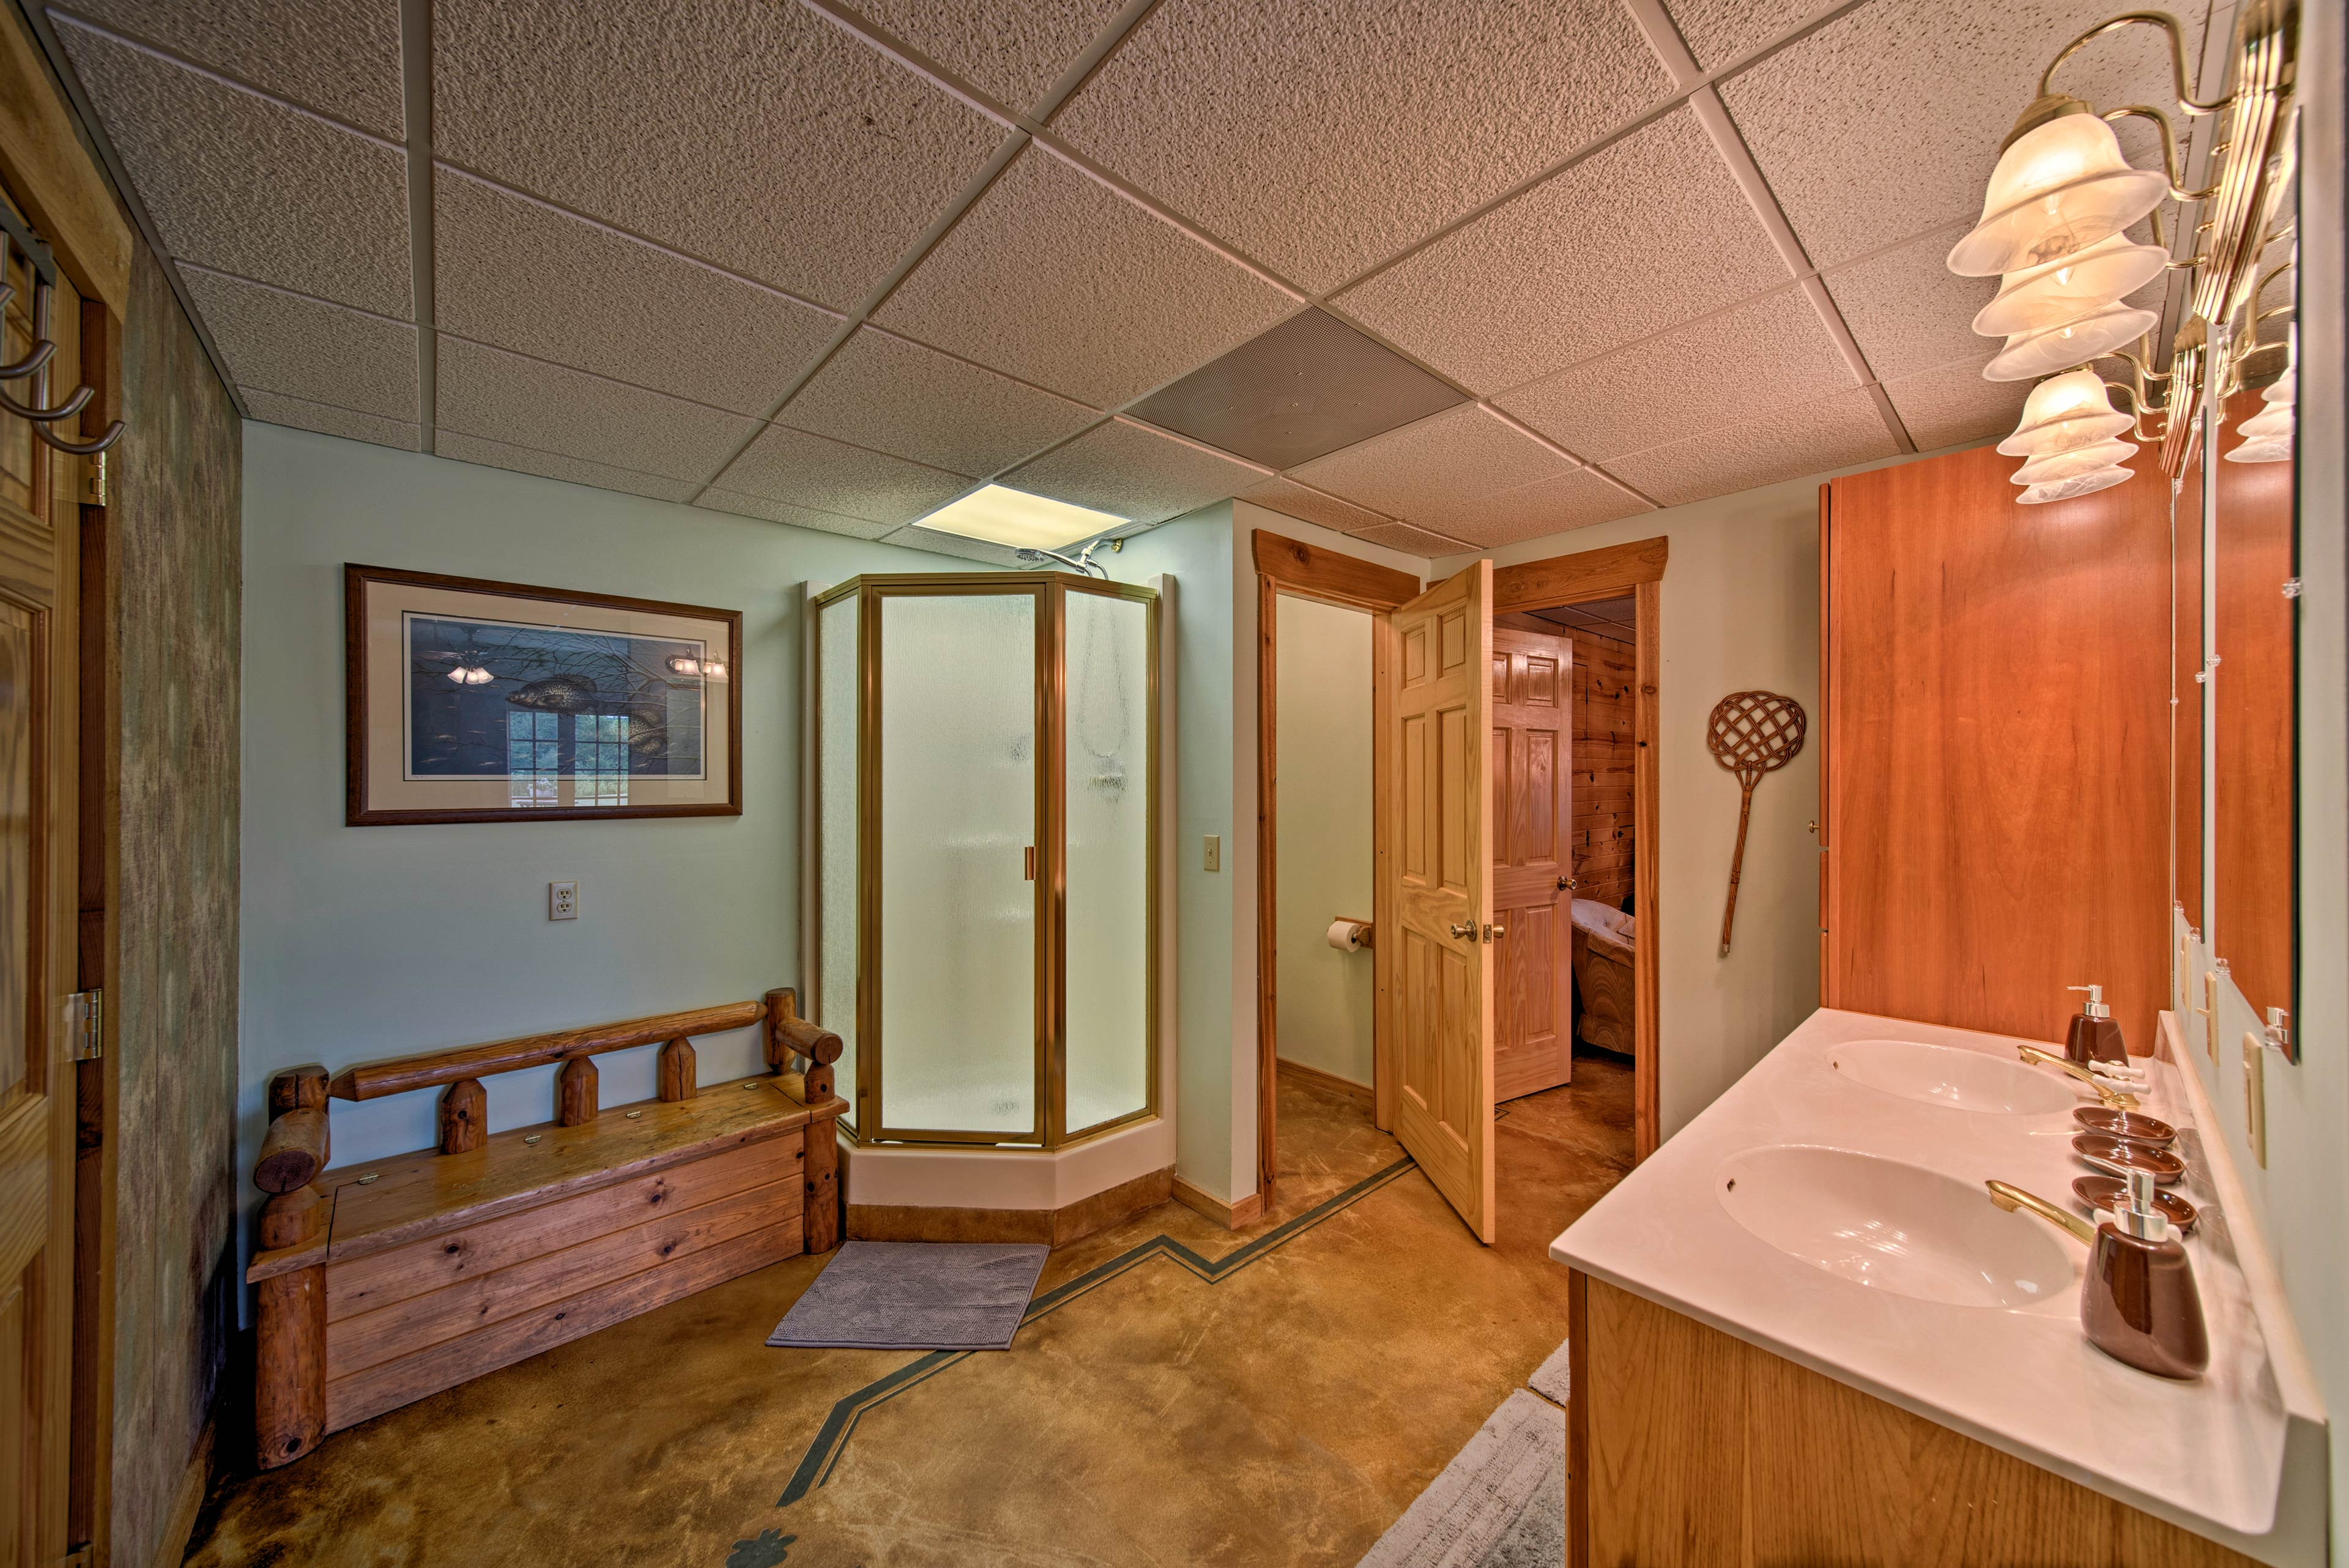 The bathroom hosts a double sink and walk-in shower.